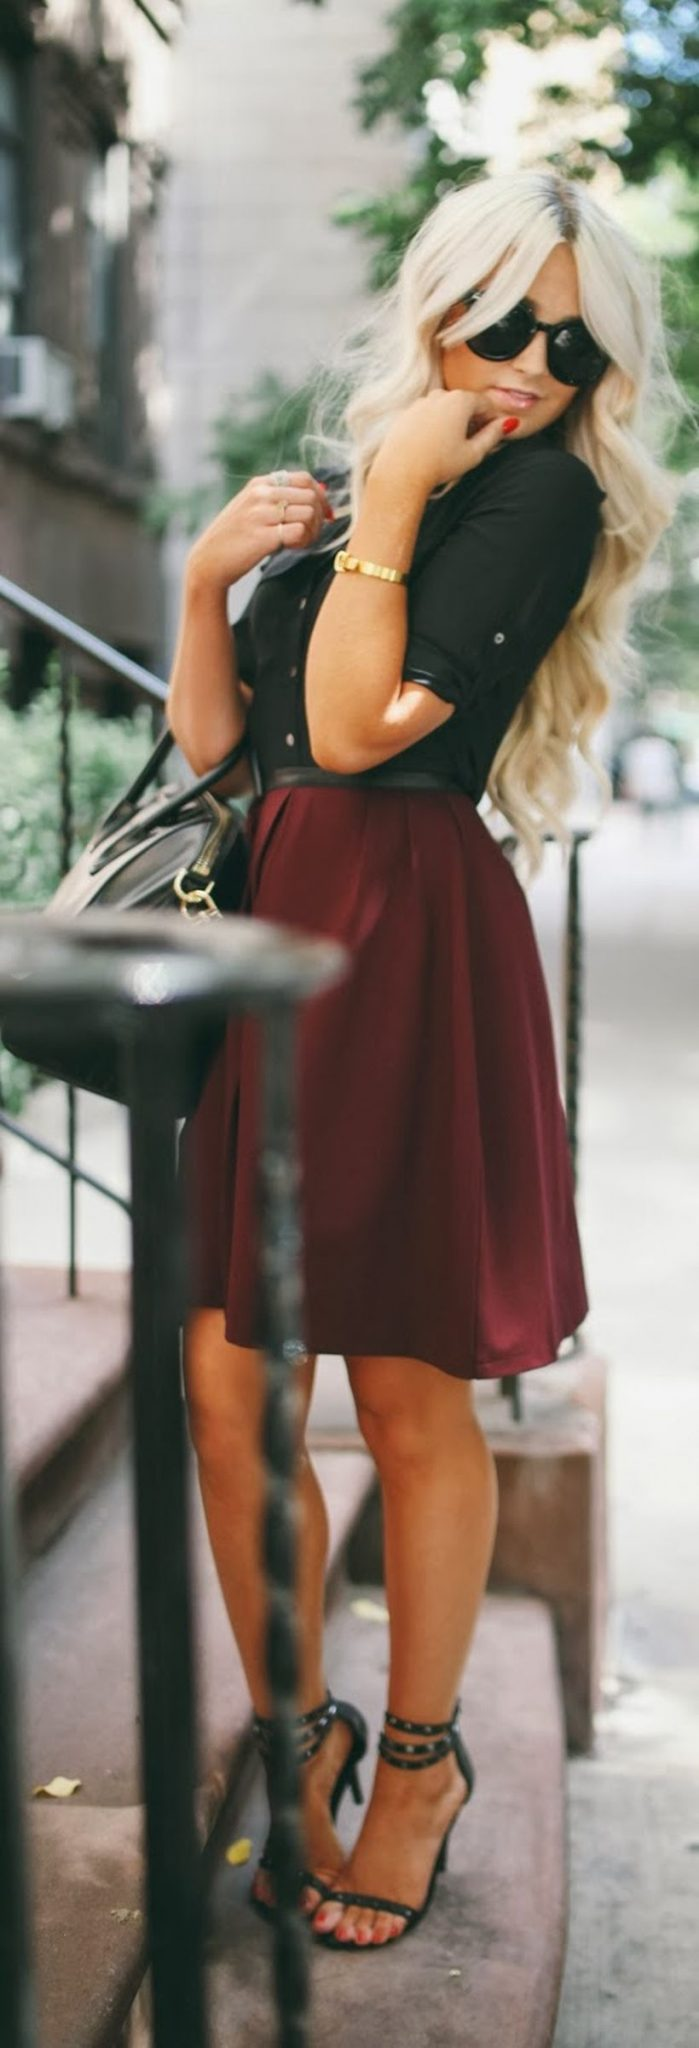 Best casual fall night outfits ideas for going out 52